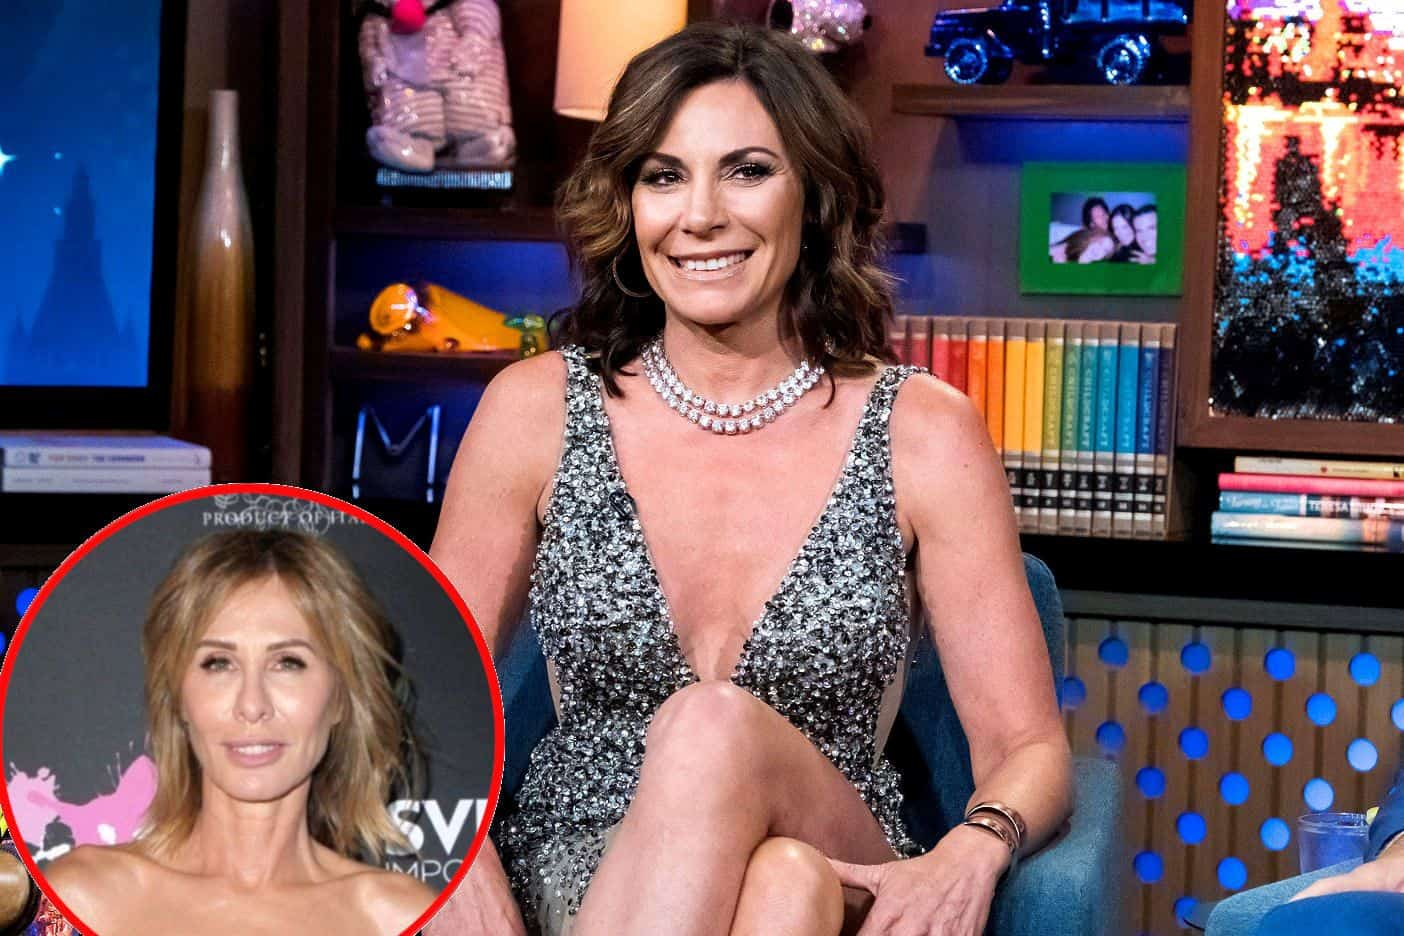 """Luann de Lesseps Slams Carole Radziwill Over """"Negative Comments,"""" Plus RHONY Star Dishes on Real Housewives All Stars and Shares Who She'd Like to Hookup With"""